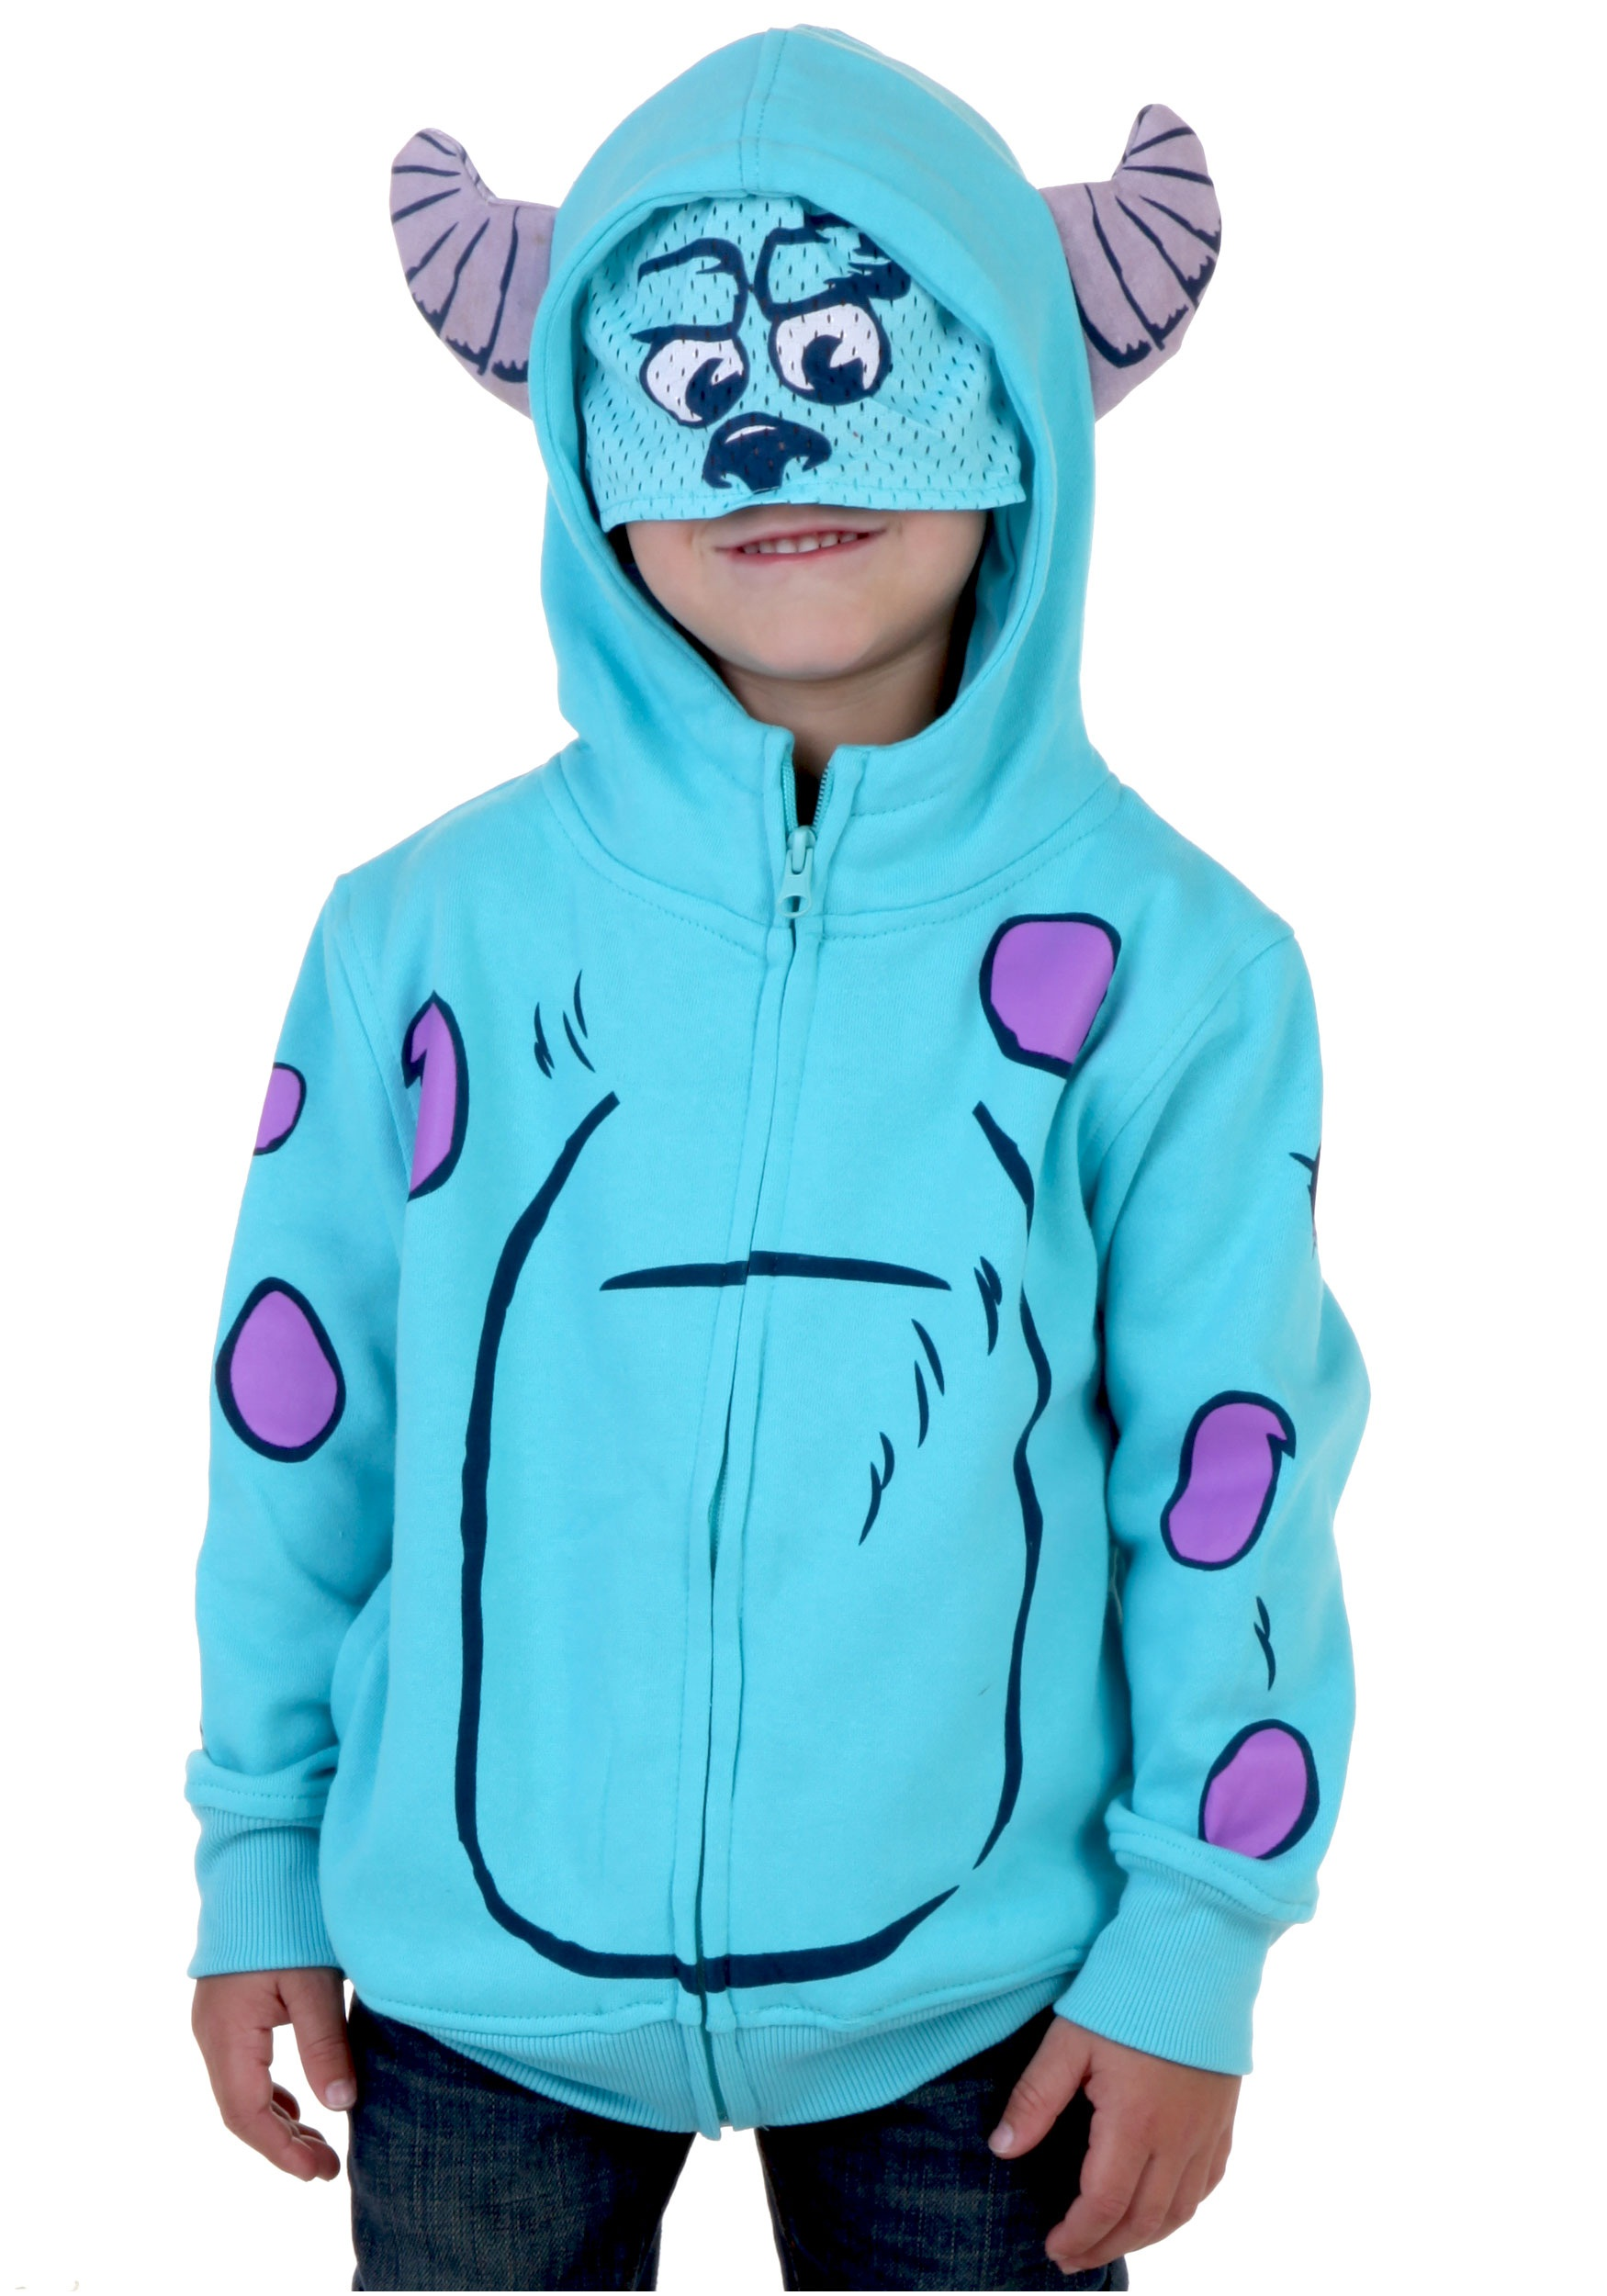 Toddler Monsters Sulley Costume Hooded Sweatshirt  sc 1 st  Halloween Costumes & Toddler Monsters Sulley Costume Hooded Sweatshirt - Halloween Costumes